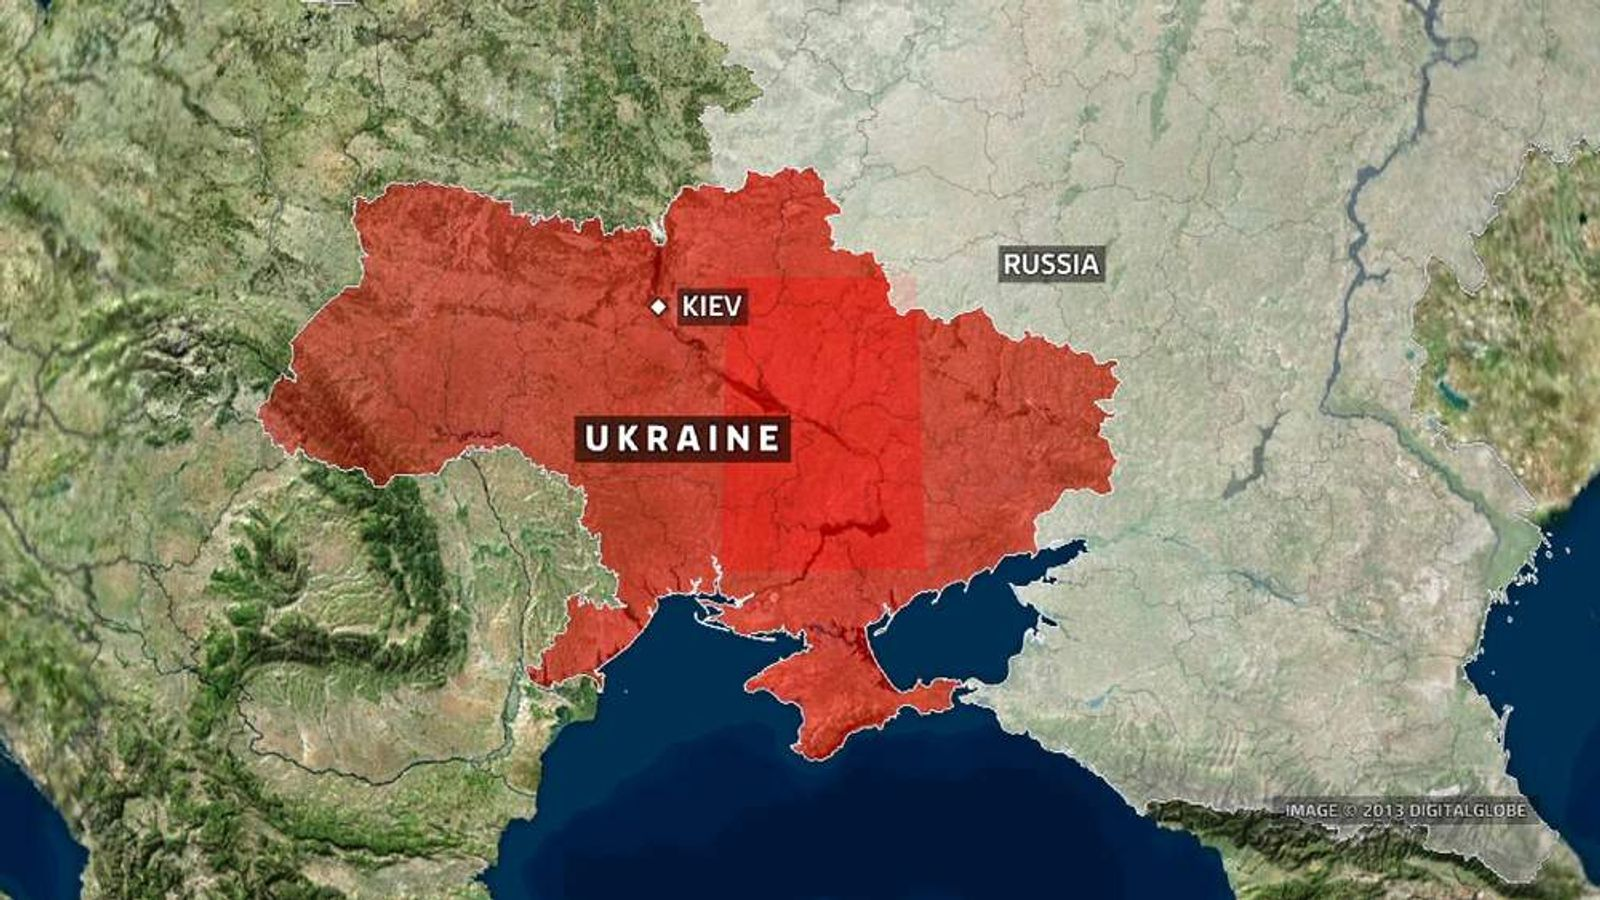 A map showing Ukraine and Russia